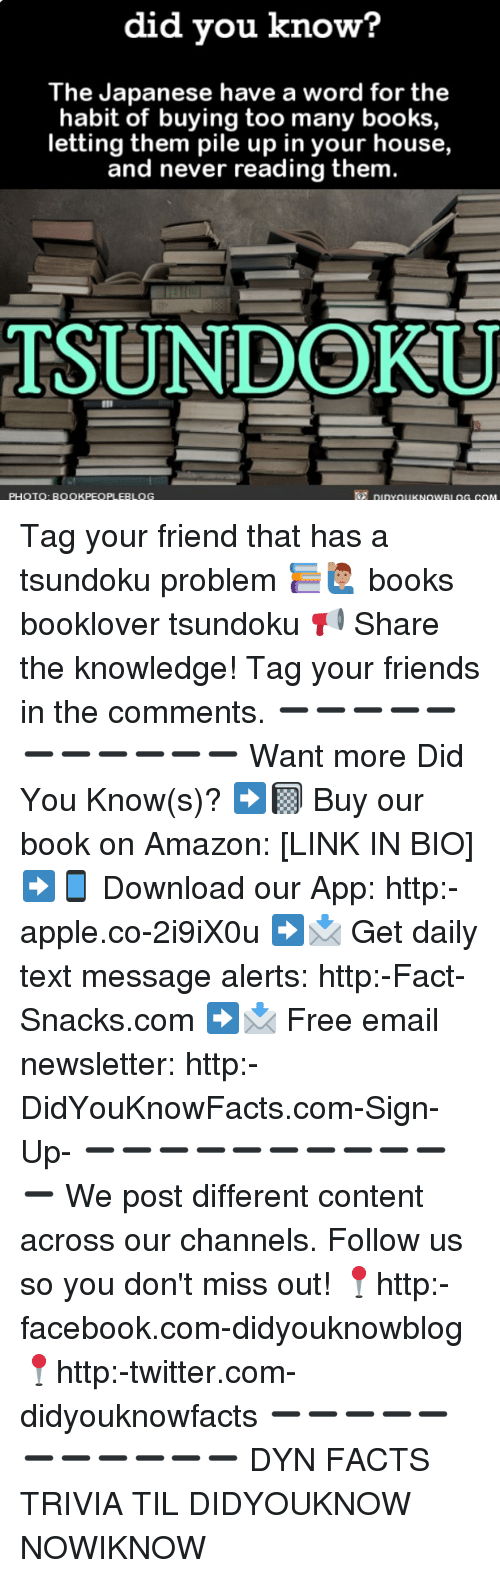 Amazon, Apple, and Books: did you know?  The Japanese have a word for the  habit of buying too many books,  letting them pile up in your house,  and never reading them.  TSUNDOKU  PHOTOQ: BOOKPEOPLEBLOG  7 DiDYOUKNOWRL OG.COM Tag your friend that has a tsundoku problem 📚🙋🏽‍♂️ books booklover tsundoku 📢 Share the knowledge! Tag your friends in the comments. ➖➖➖➖➖➖➖➖➖➖➖ Want more Did You Know(s)? ➡📓 Buy our book on Amazon: [LINK IN BIO] ➡📱 Download our App: http:-apple.co-2i9iX0u ➡📩 Get daily text message alerts: http:-Fact-Snacks.com ➡📩 Free email newsletter: http:-DidYouKnowFacts.com-Sign-Up- ➖➖➖➖➖➖➖➖➖➖➖ We post different content across our channels. Follow us so you don't miss out! 📍http:-facebook.com-didyouknowblog 📍http:-twitter.com-didyouknowfacts ➖➖➖➖➖➖➖➖➖➖➖ DYN FACTS TRIVIA TIL DIDYOUKNOW NOWIKNOW